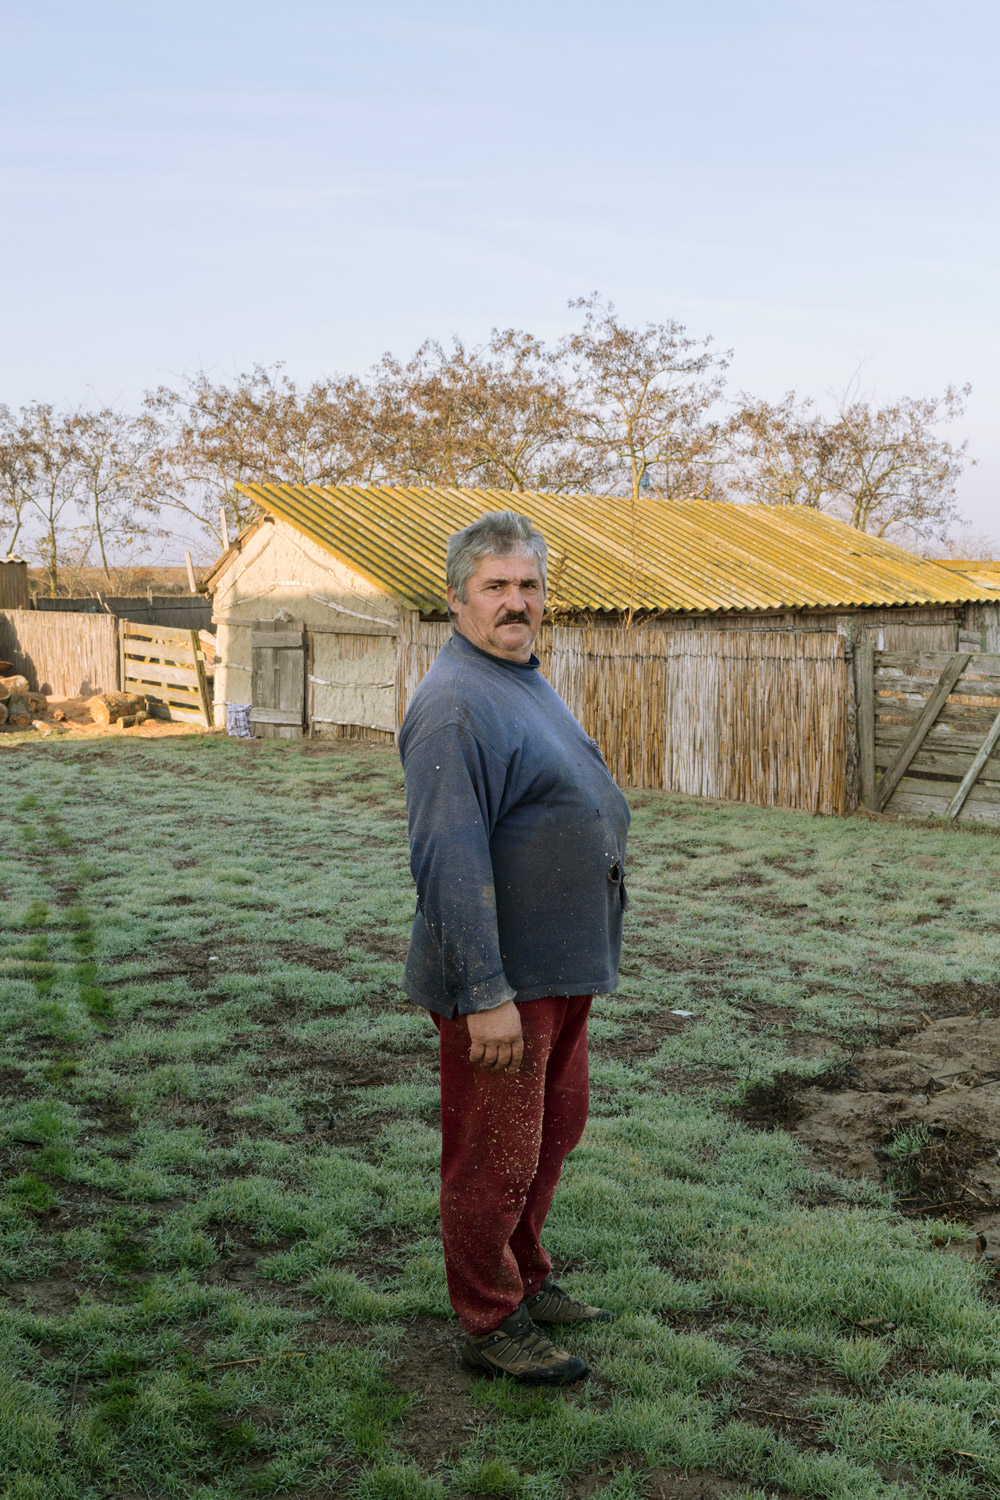 Sulina, Romania,November 2017. Outside of town, a farmer next to his house.